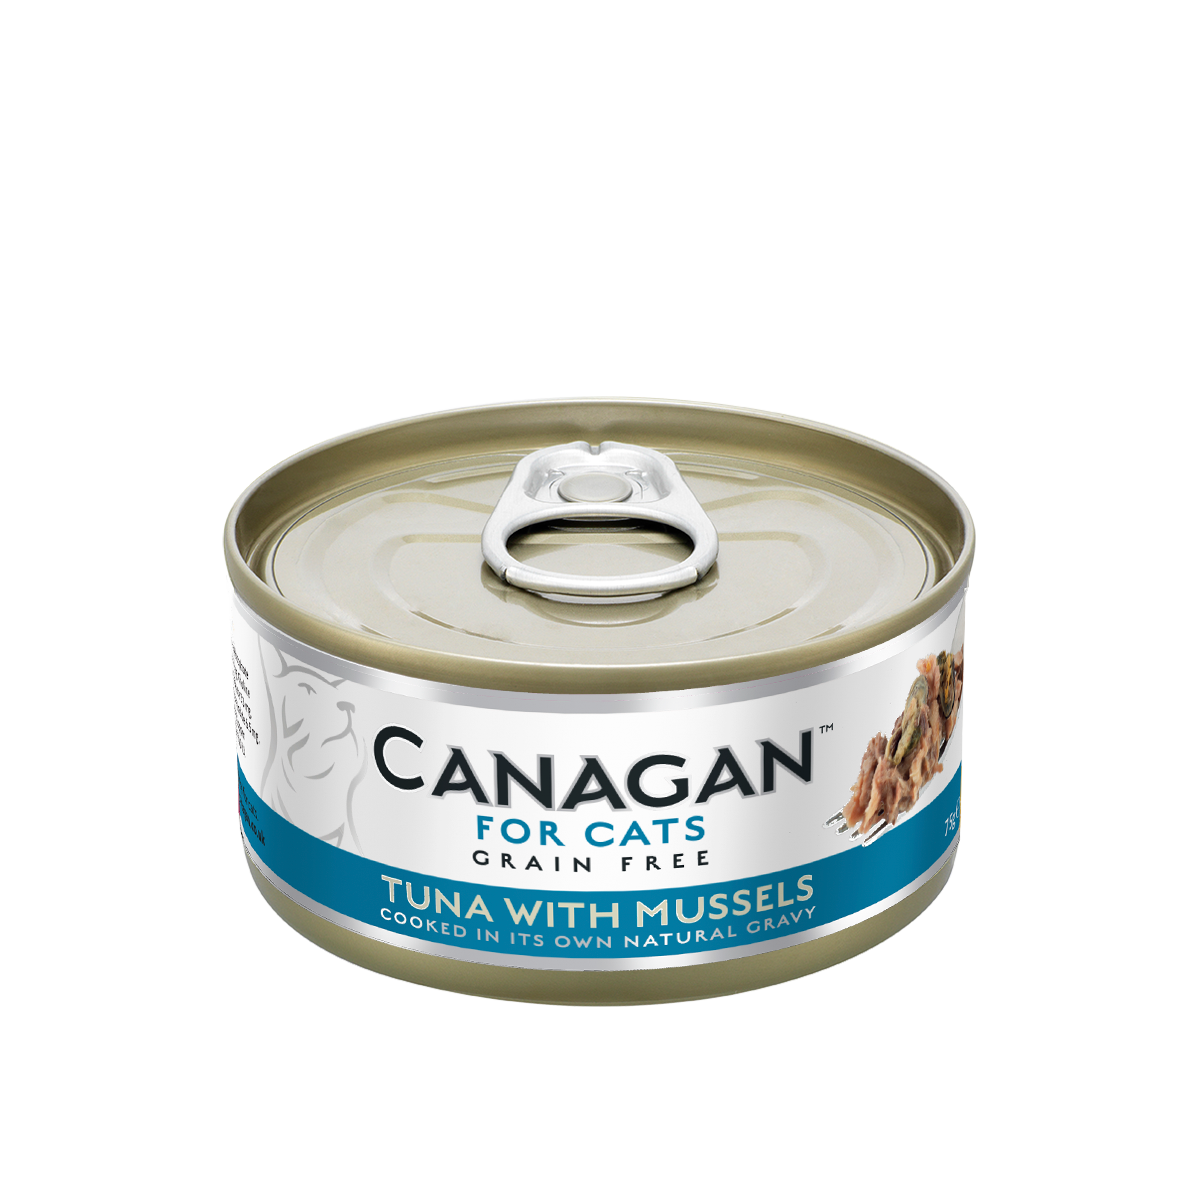 Canagan Tuna with Mussels 75g